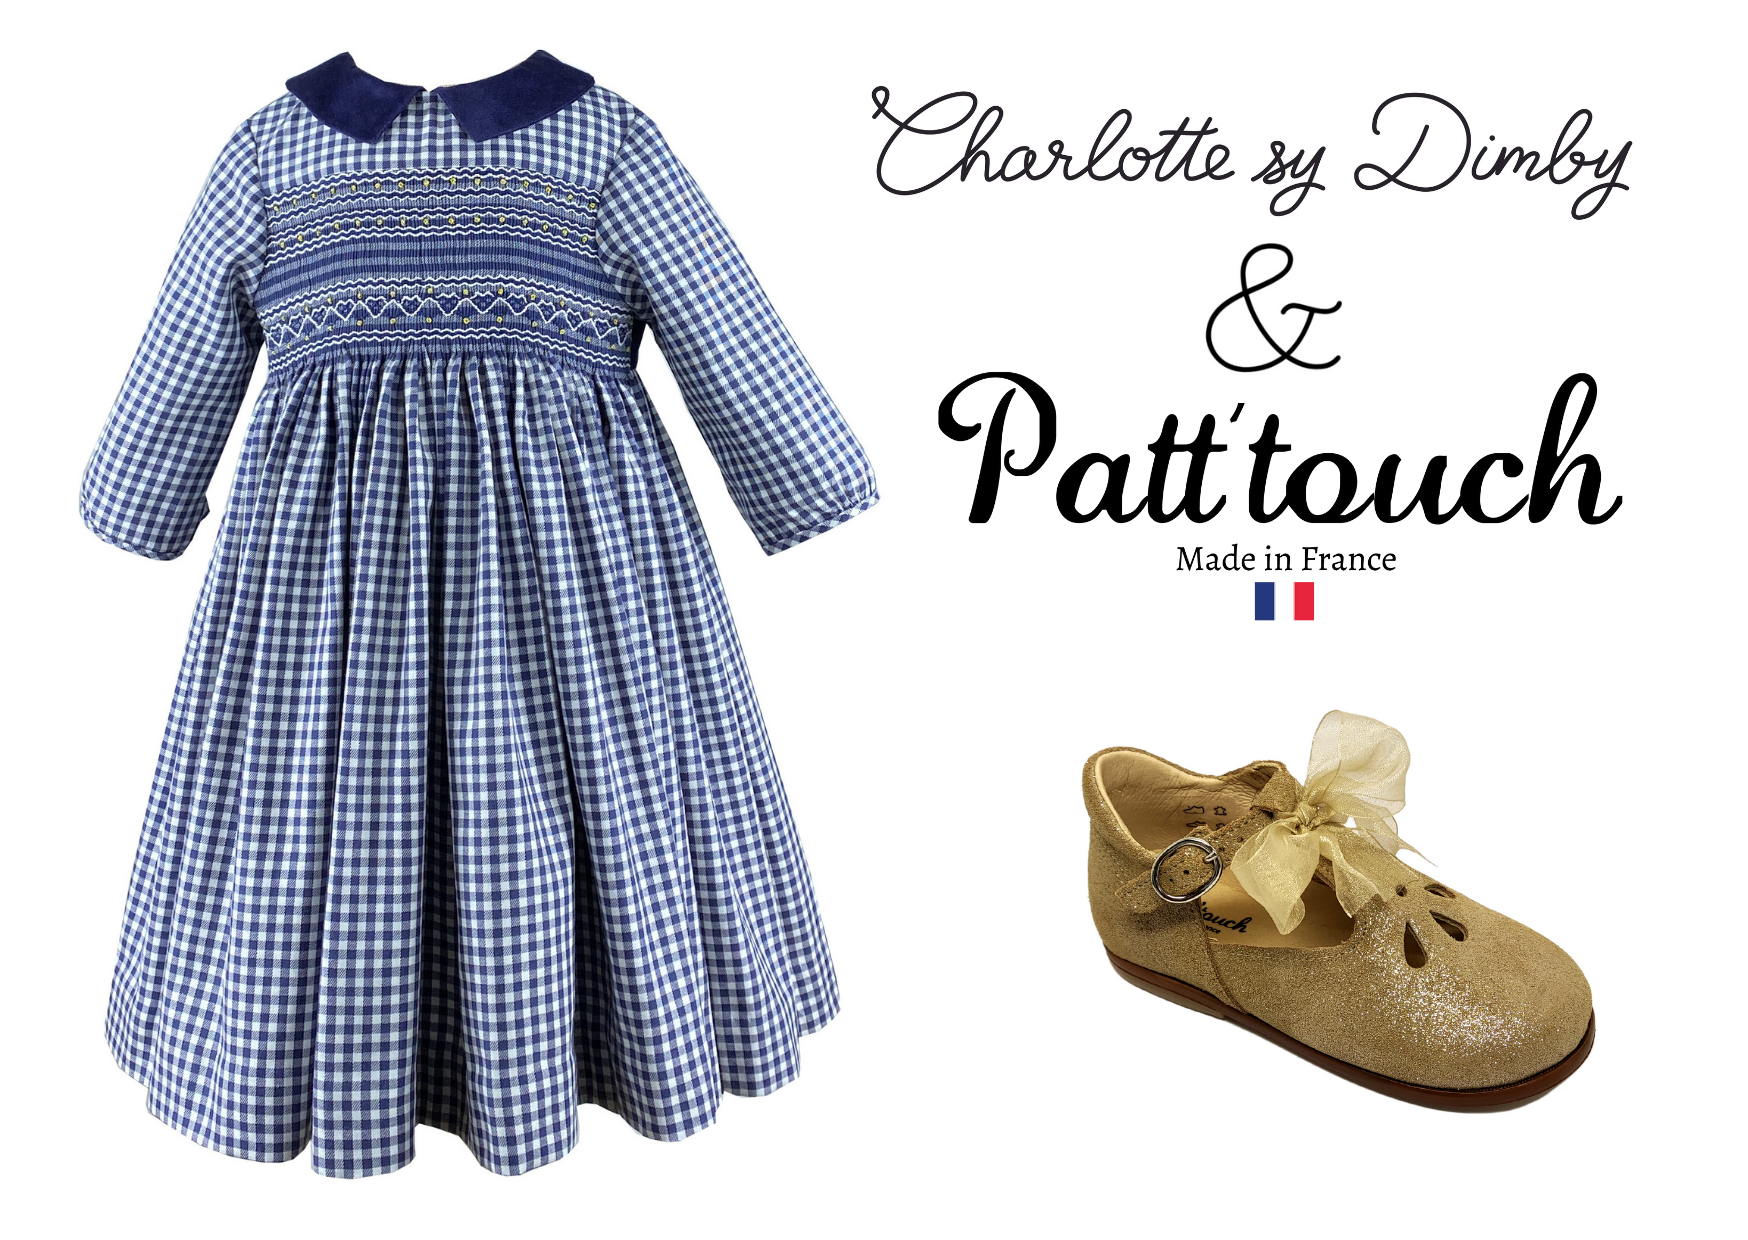 Patt'touch & Charlotte sy Dimby : a pair of shoes and a dress